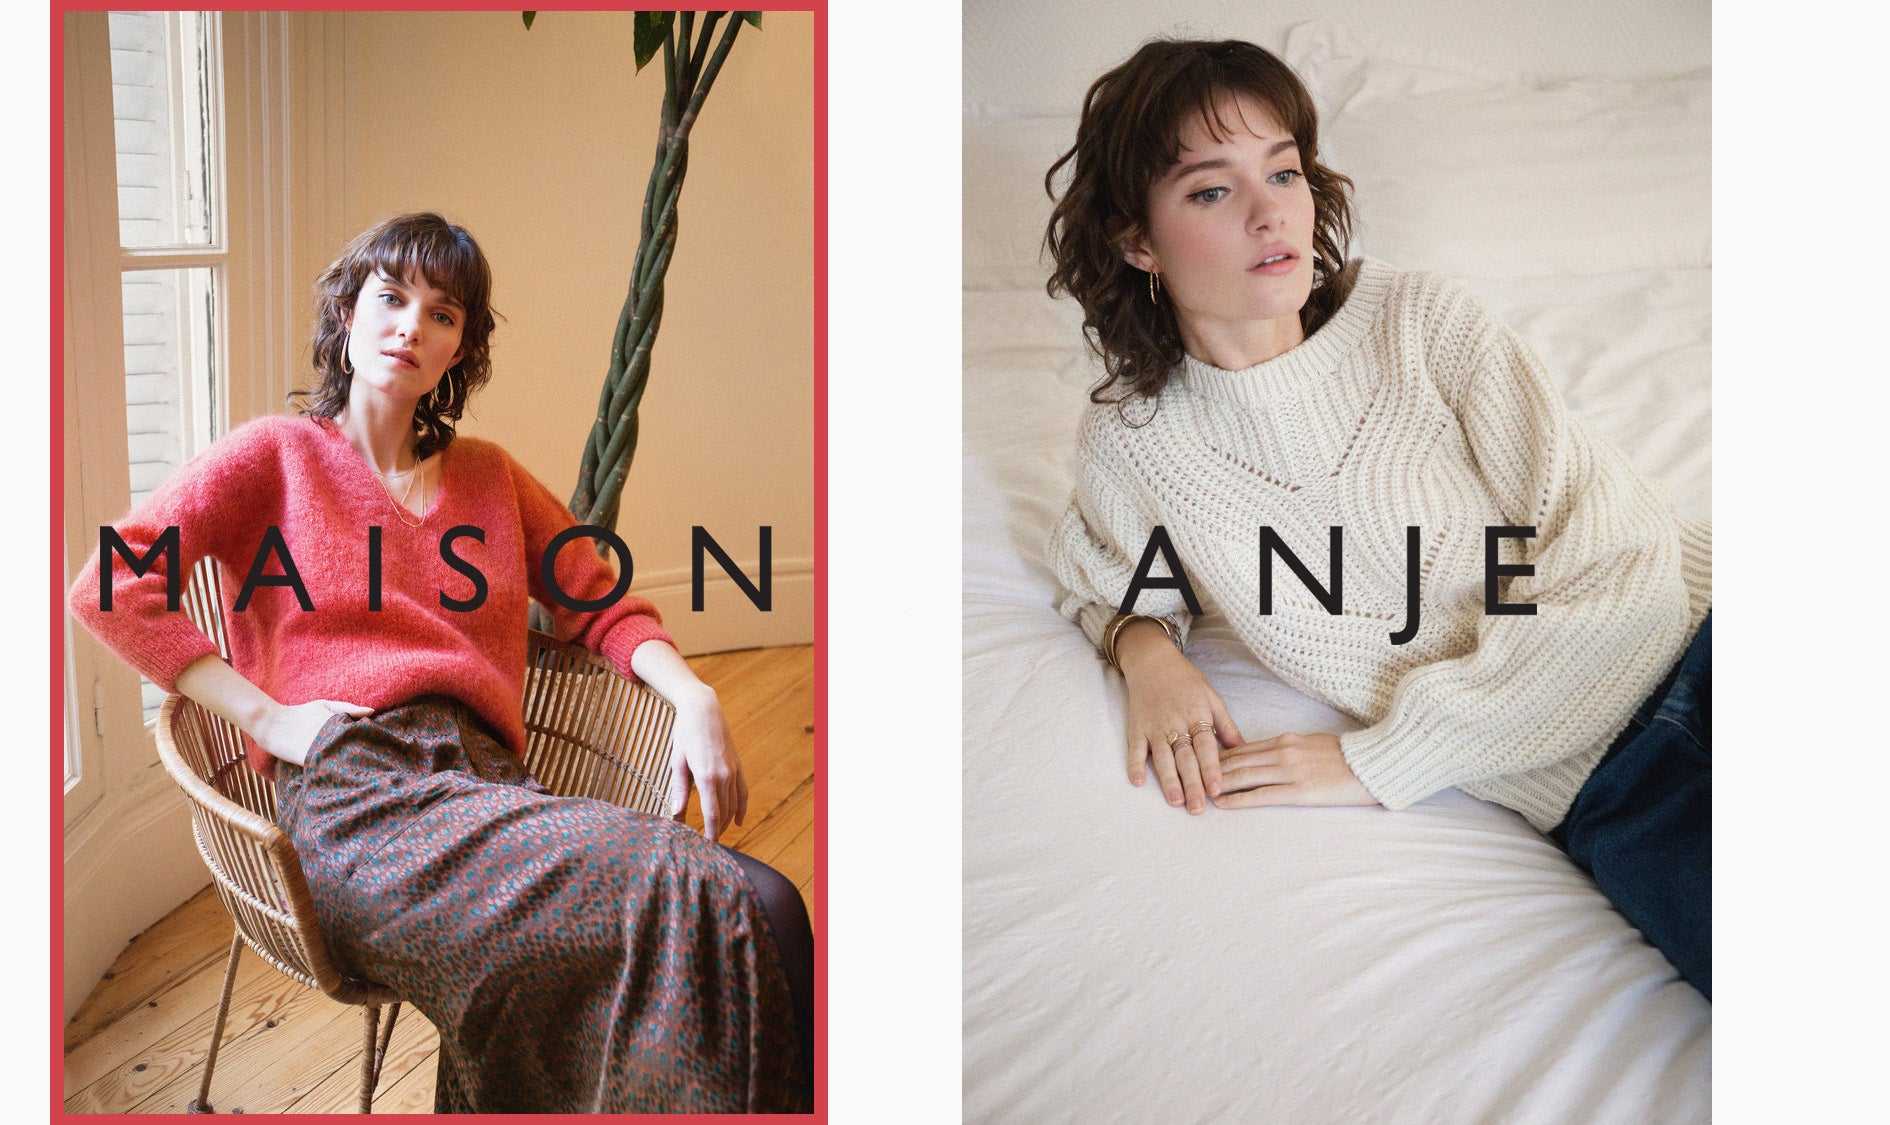 maison anje 2019 winter autumn new arrivals knitwear paris made in france winter fashion cottesloe perth australia iridescent sea beach house